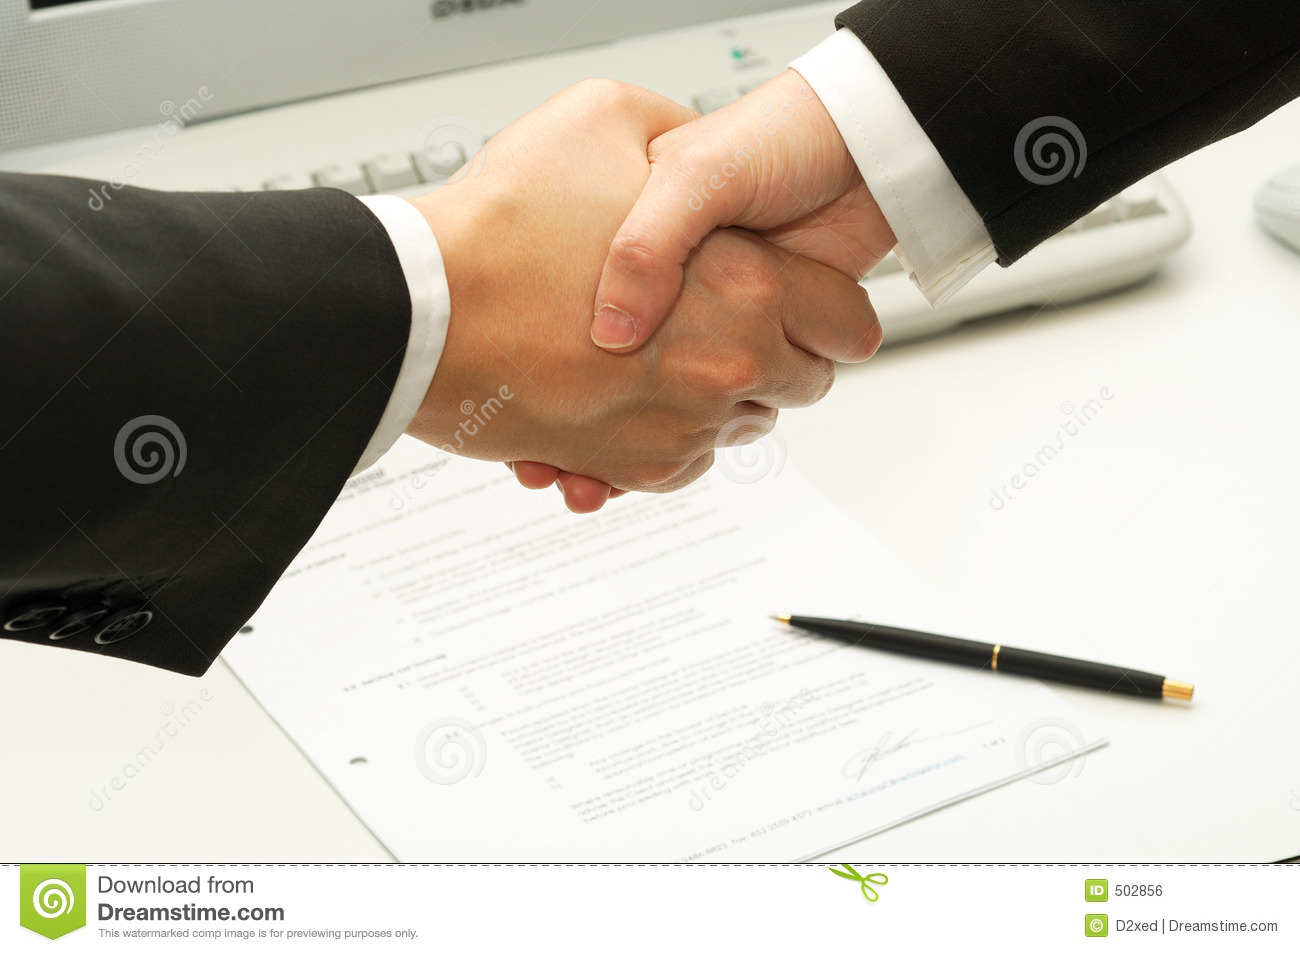 business-man-shake-hands-signing-contract-502856.jpg